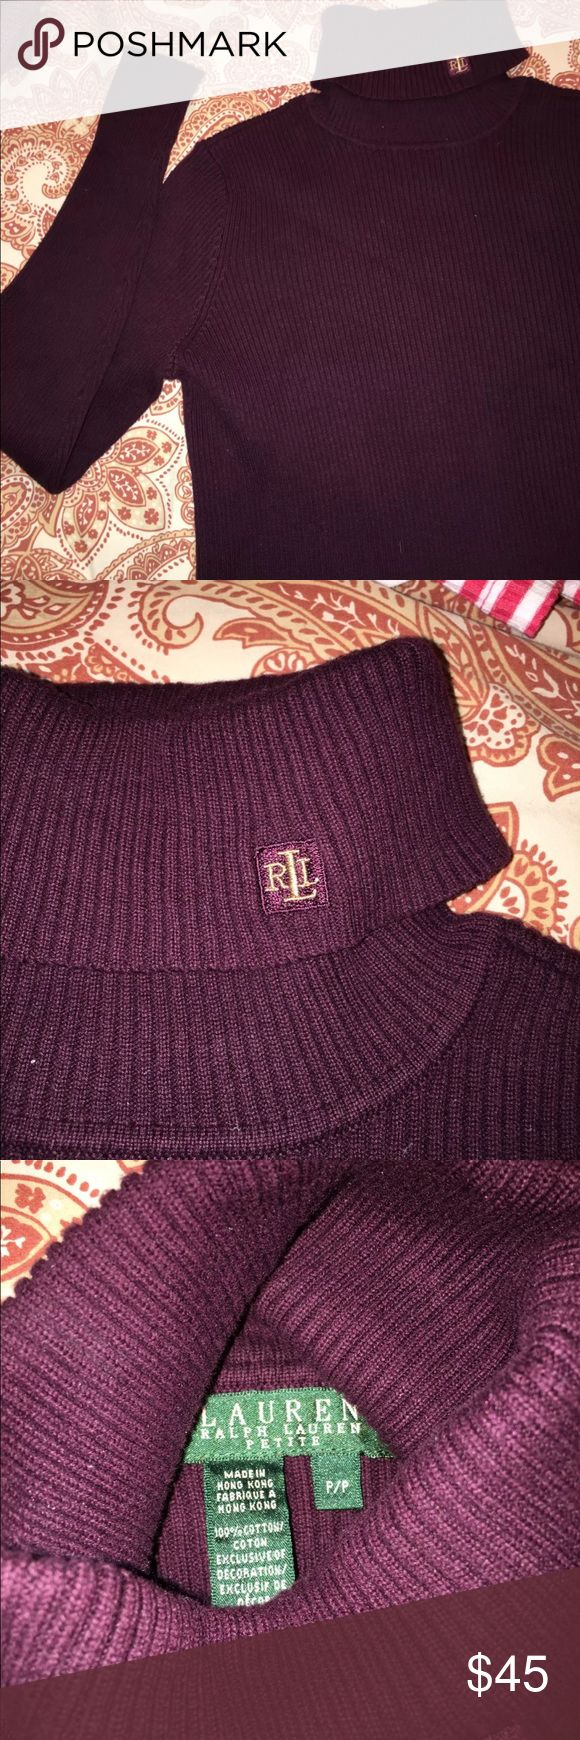 NWOT Lauren Ralph Lauren Turtleneck! Beautiful lauren ralph lauren deep purple turtleneck✨ I bought this but never wore it so it's new without tags ✨ Fits a SMALL Lauren Ralph Lauren Tops